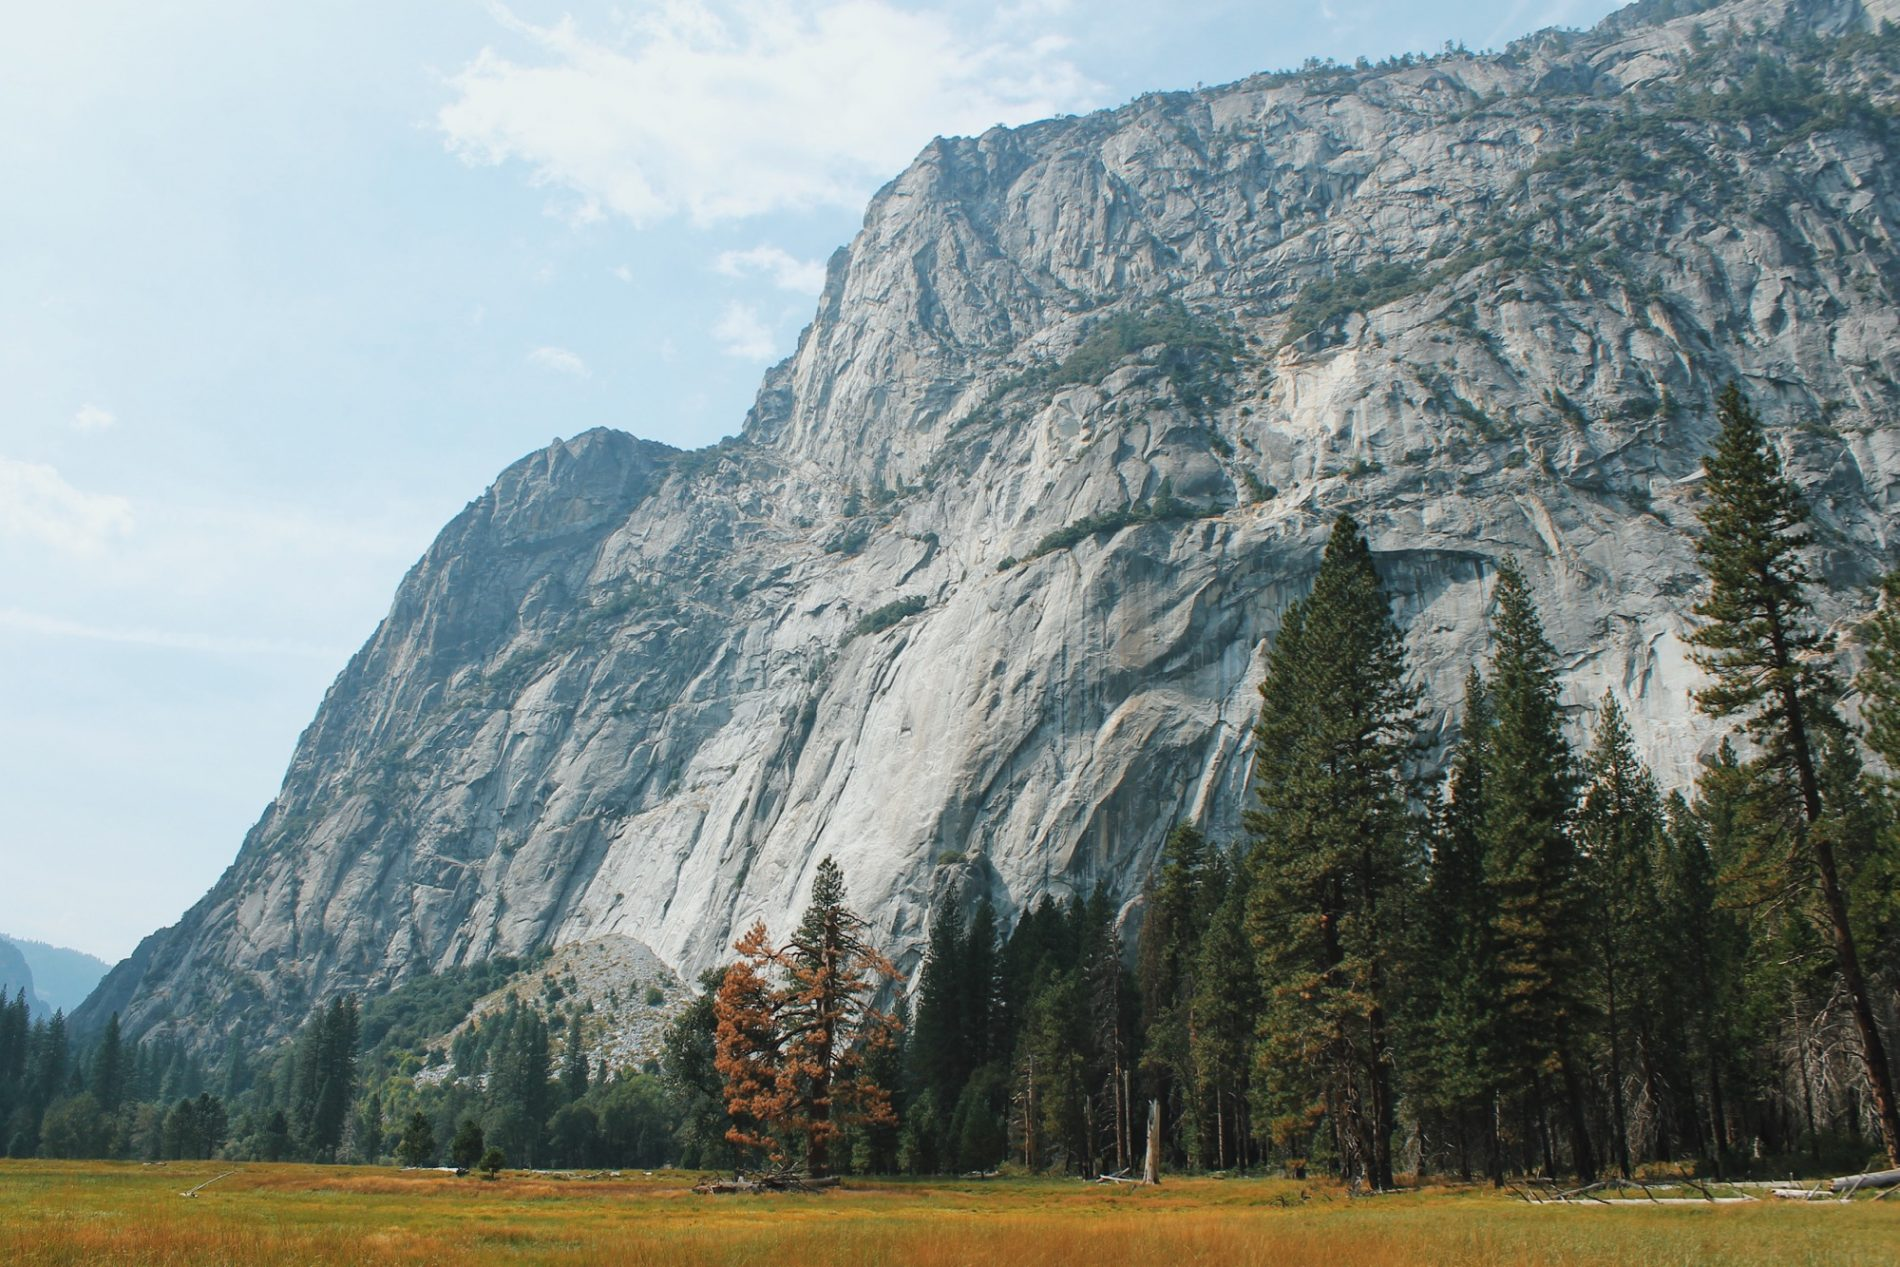 USA road trip, desert road trip, road trip itinerary, USA travel, travel ideas, Yosemite